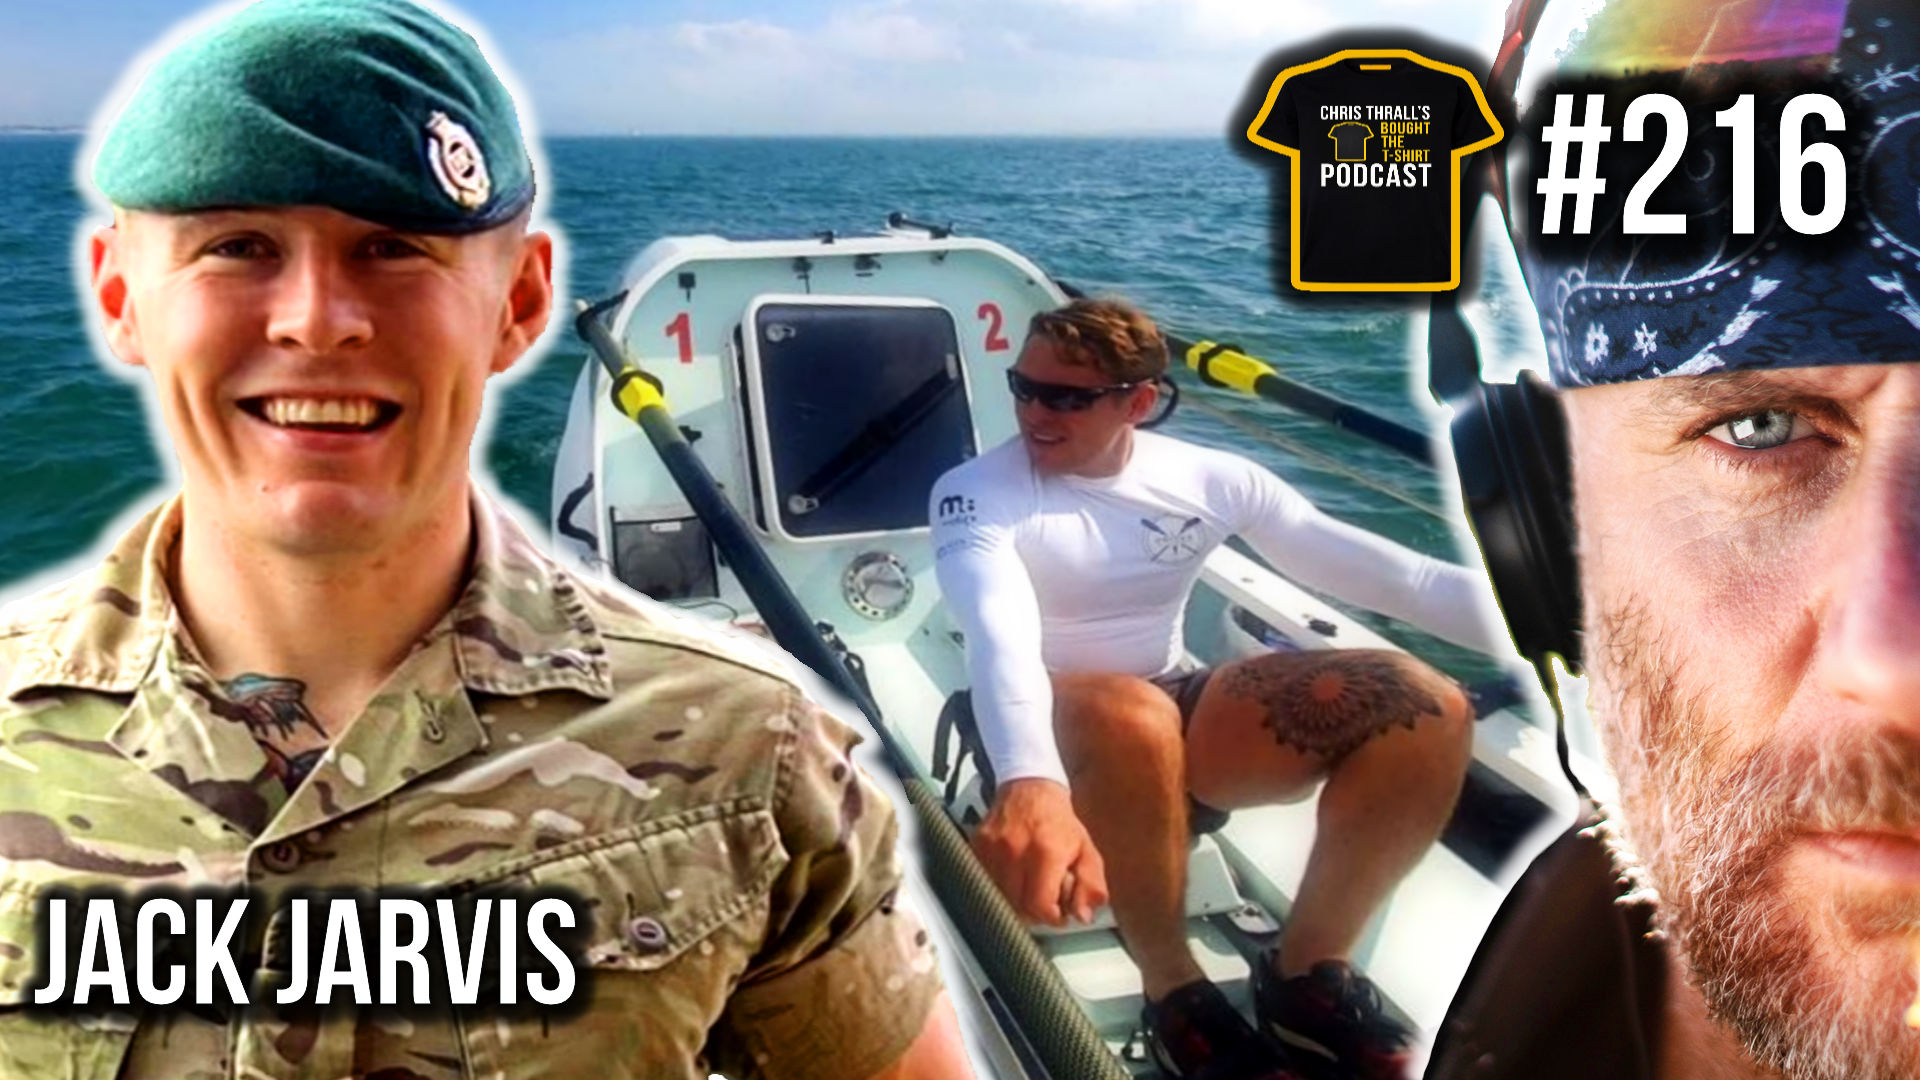 All Arms Commando Course & Rowing The Atlantic | Podcast #216